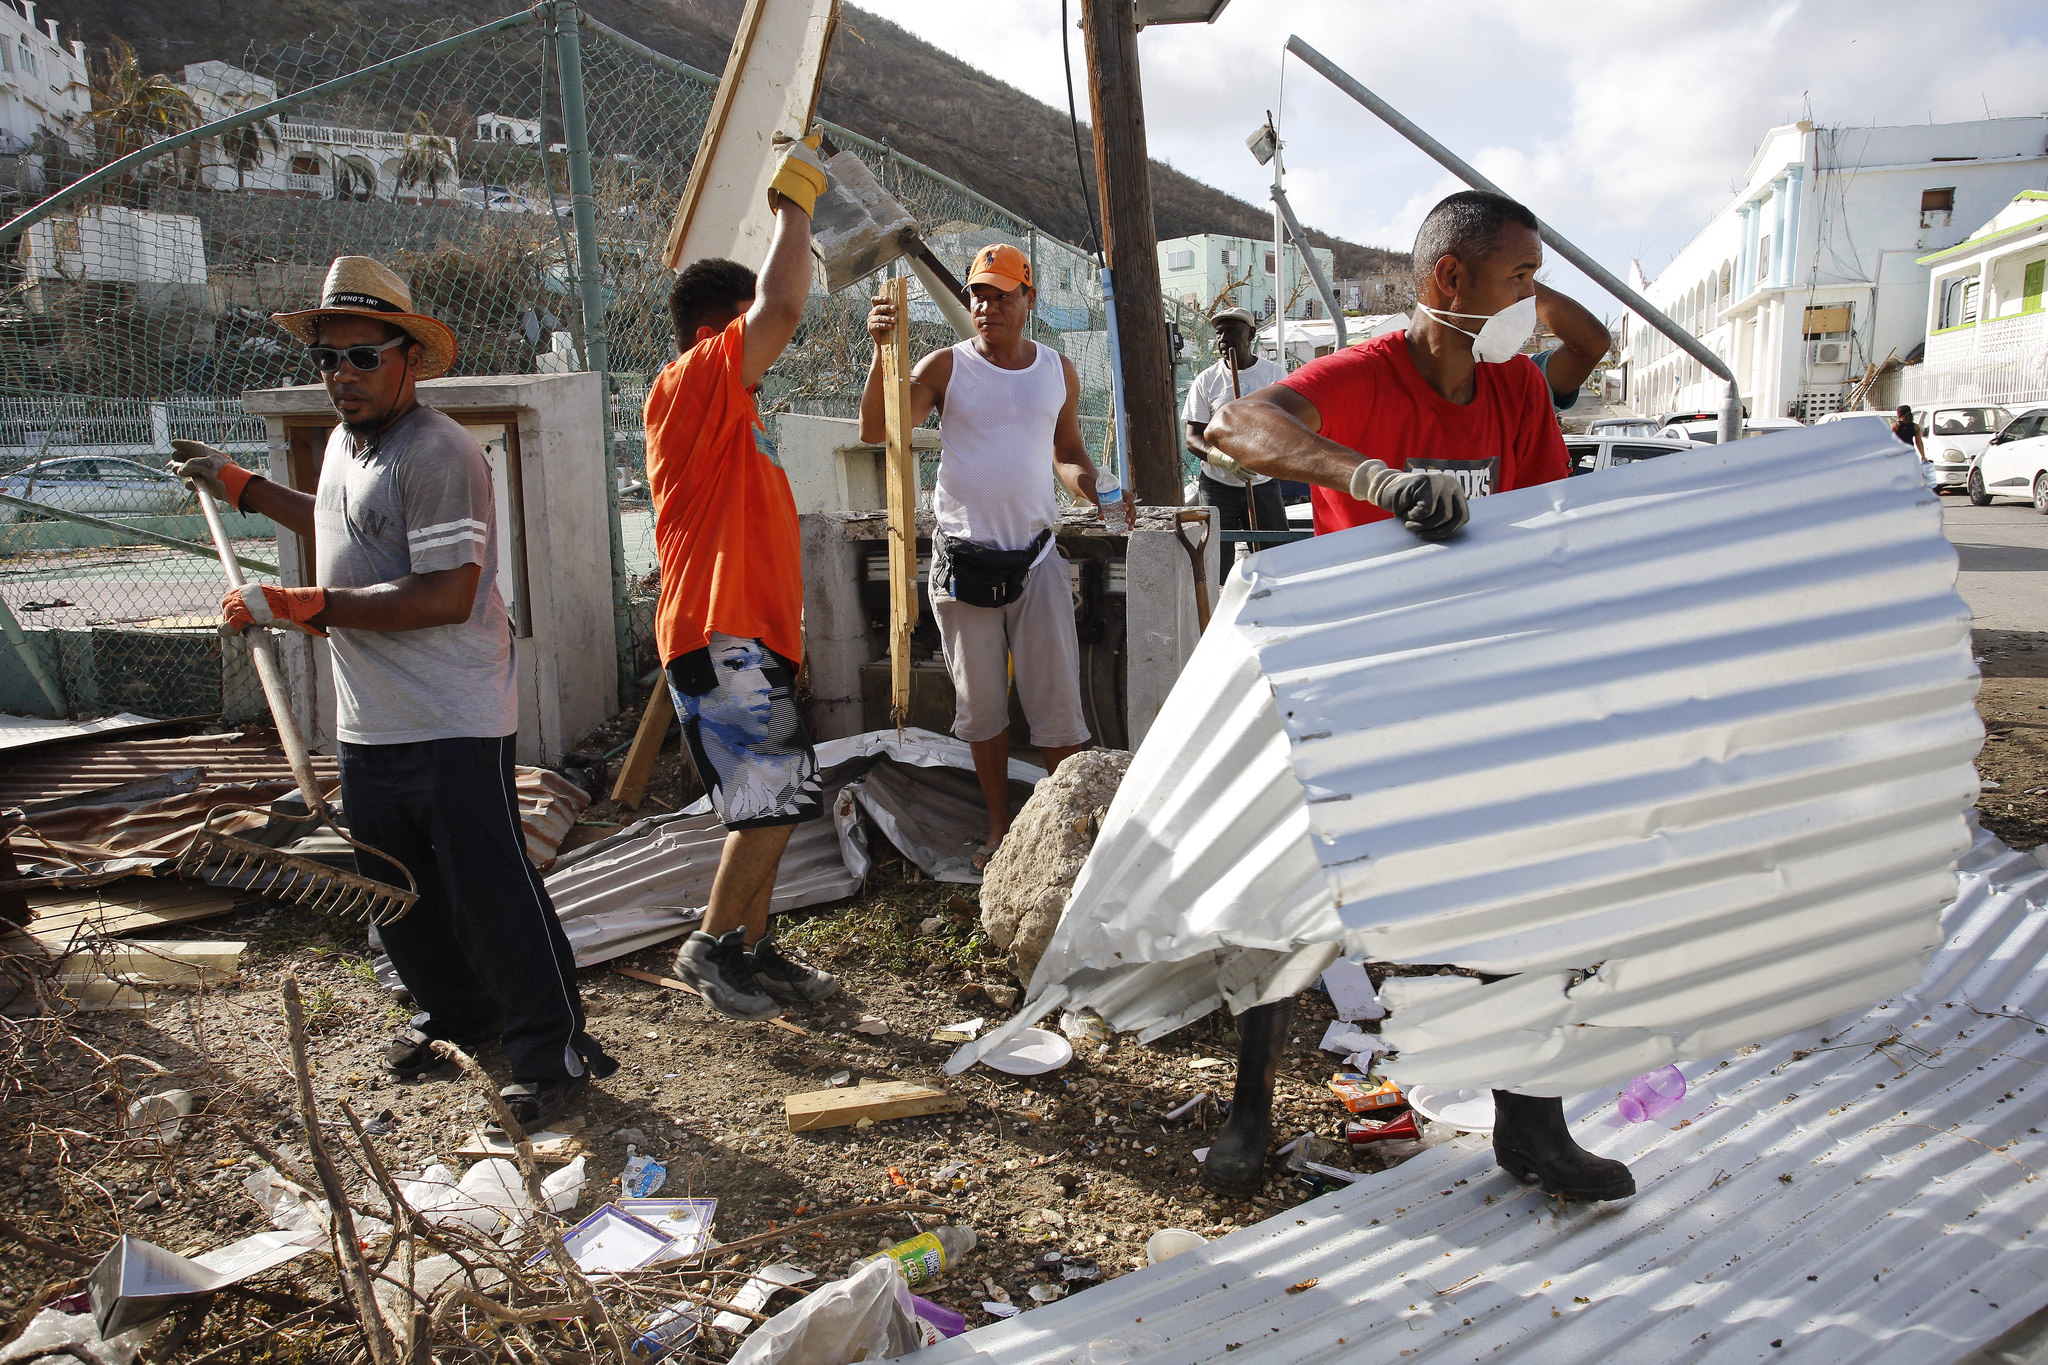 A group of man clear debris